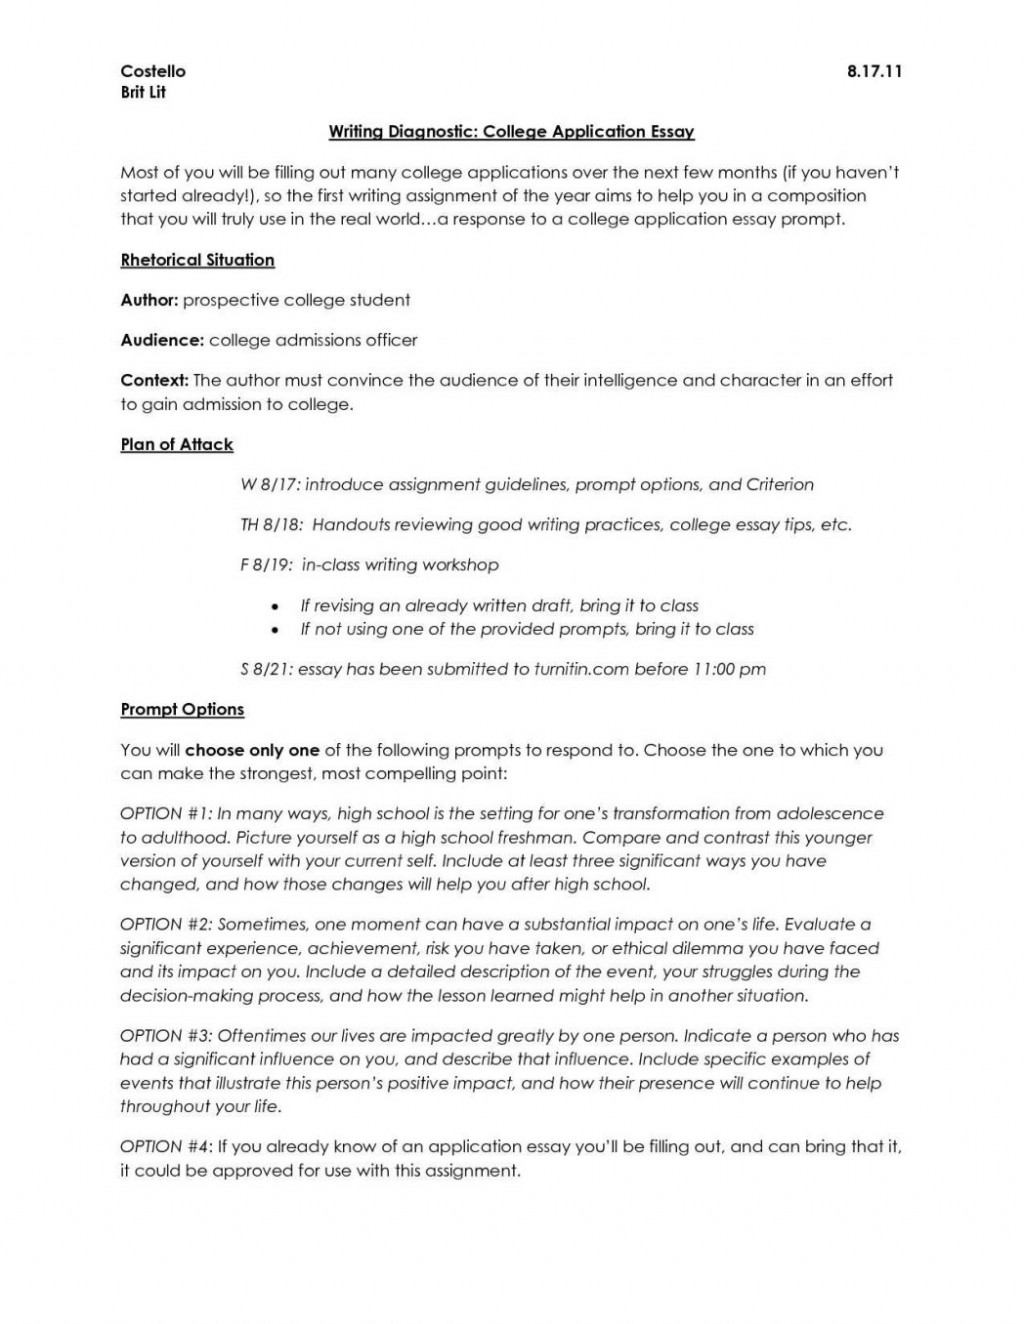 008 College Application Essay Topics Example Samples Of Essays For Admissions 626reserve Com Owhsv Question Examples Cliche Prompt To Avoid Rutgers Dreaded Admission Prompts 2016 Applications Large